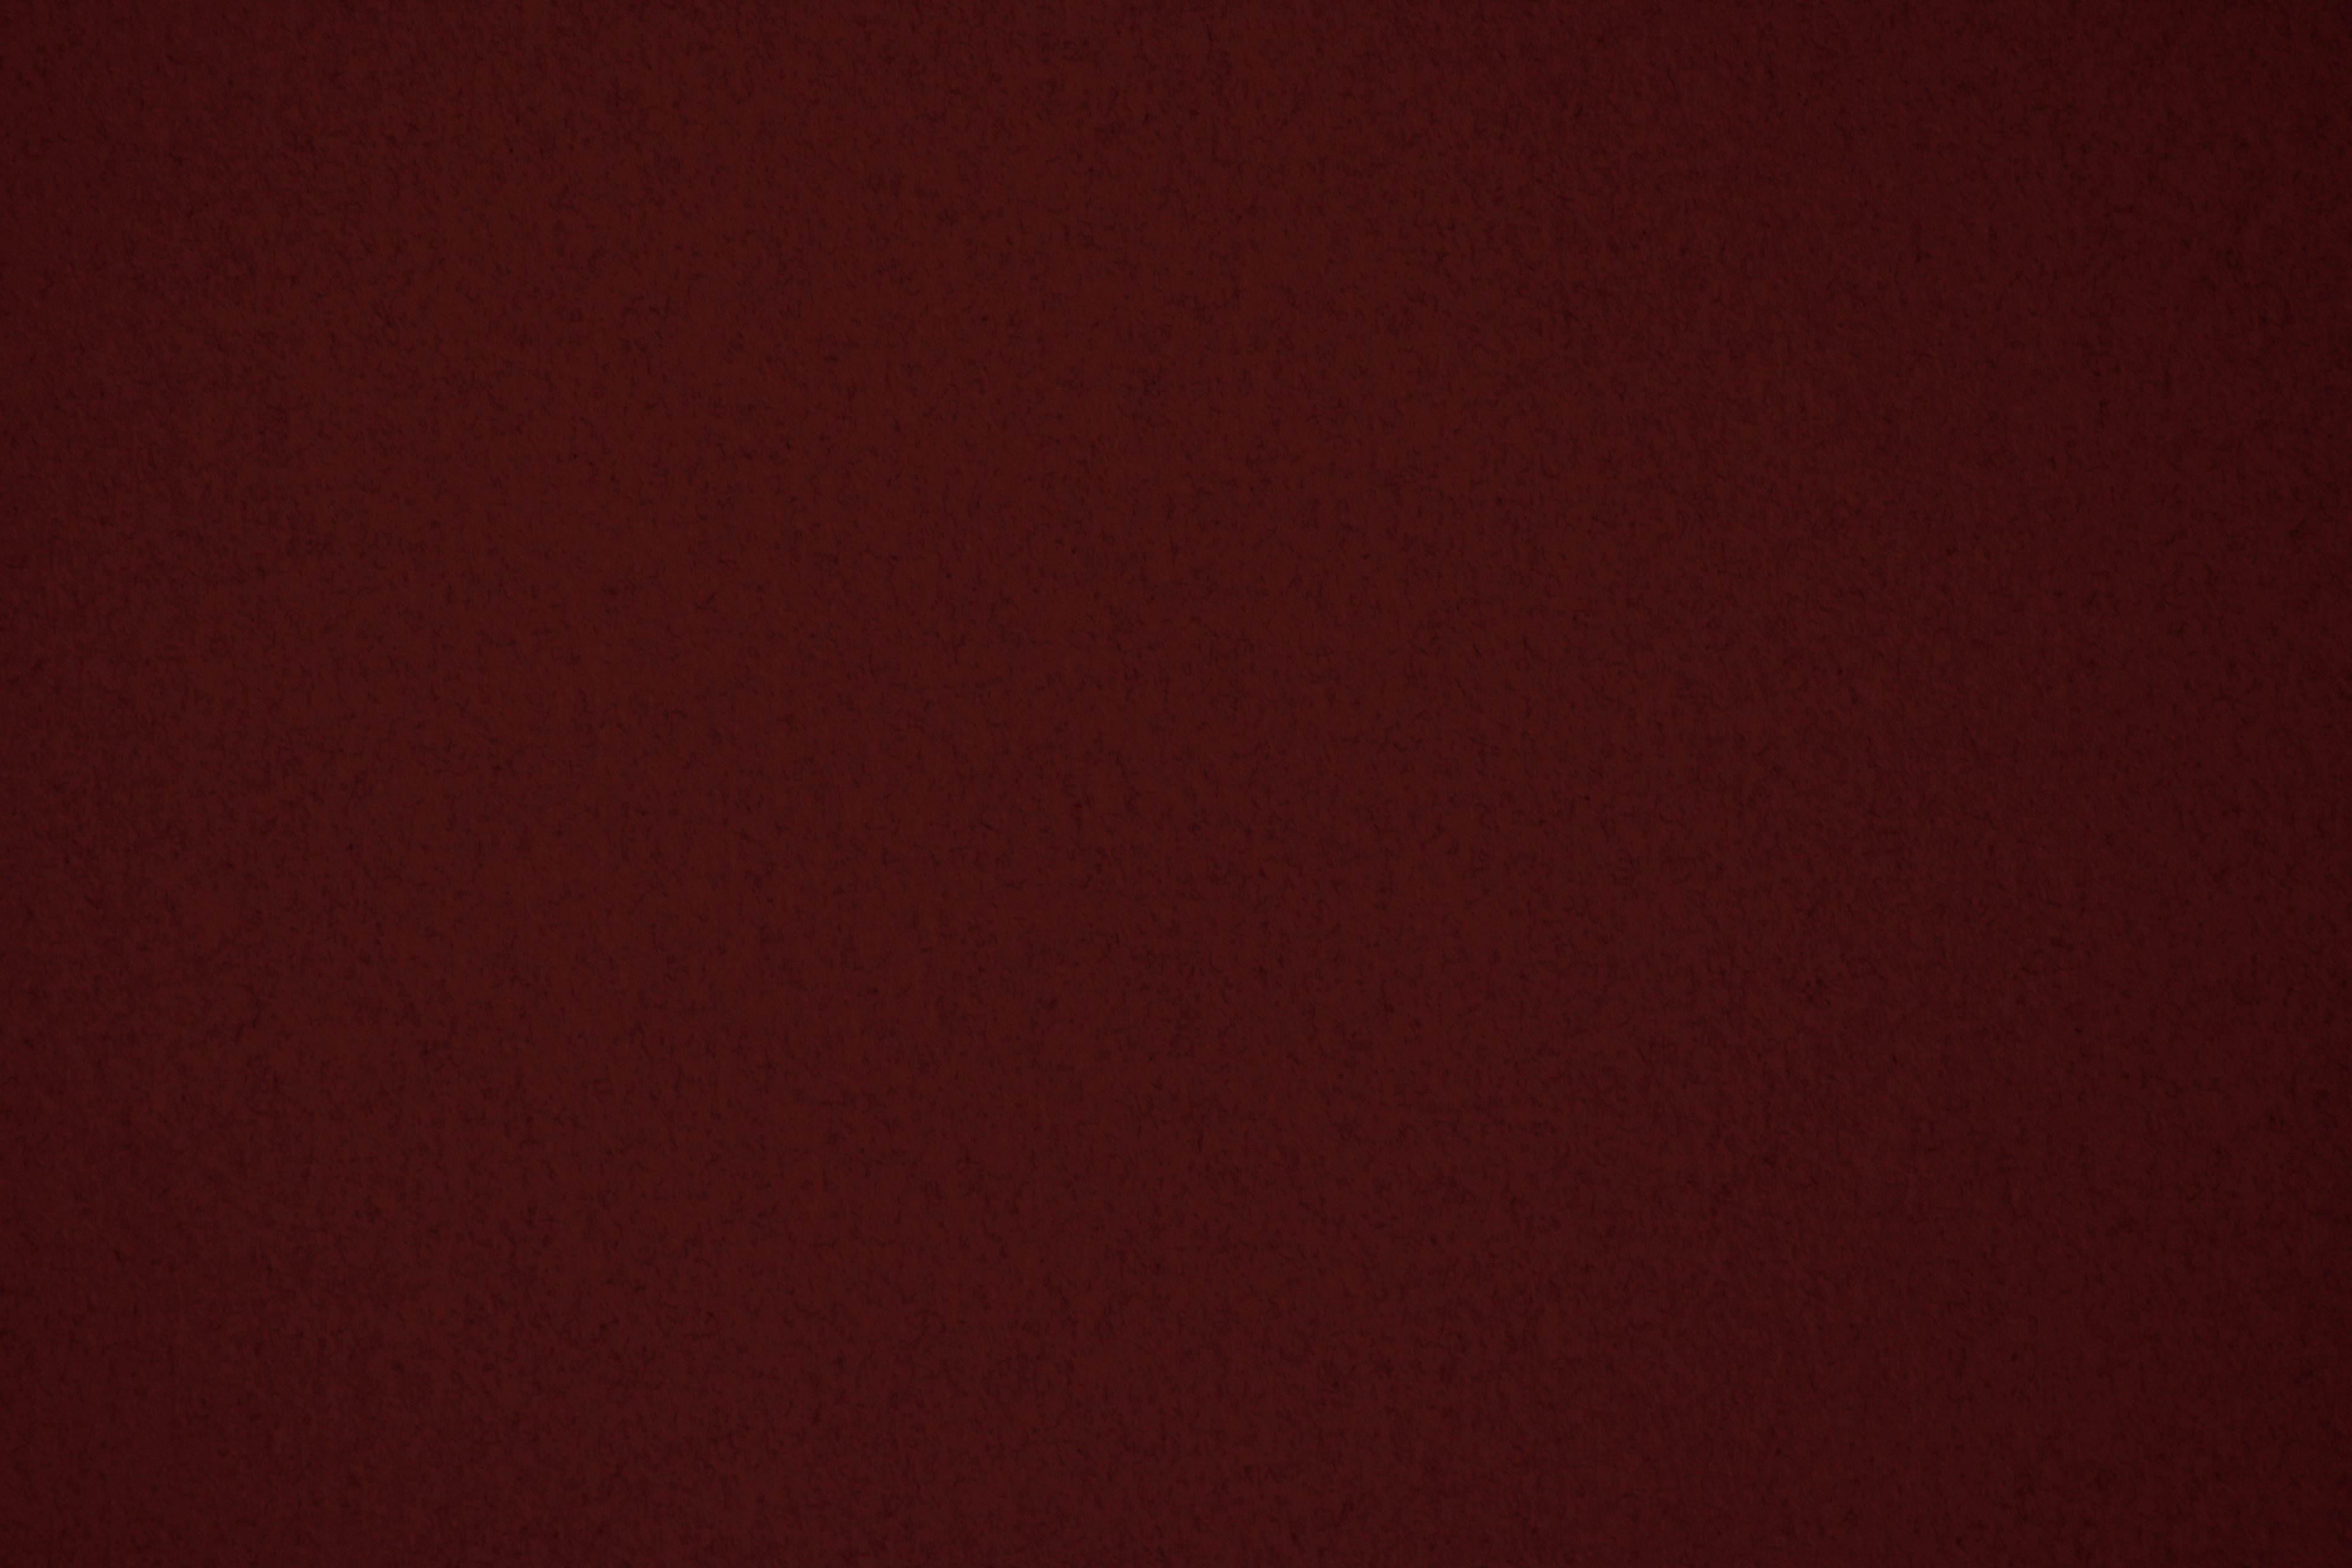 Maroon Wallpaper Wallpapersafari